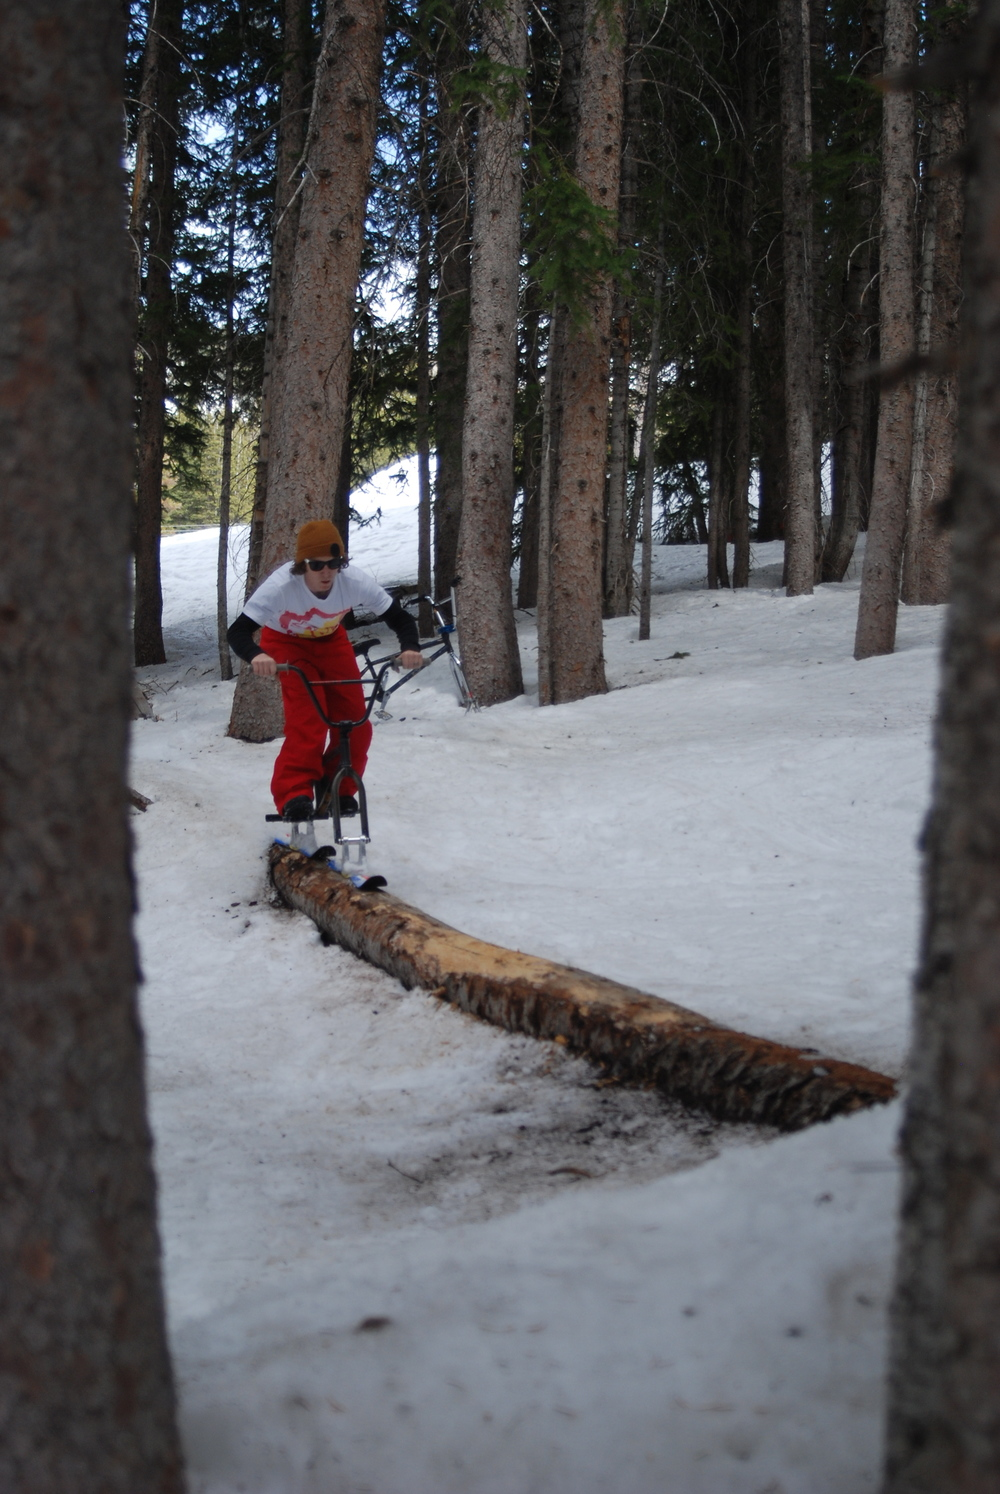 Cam Wood in the woods riding across some wood